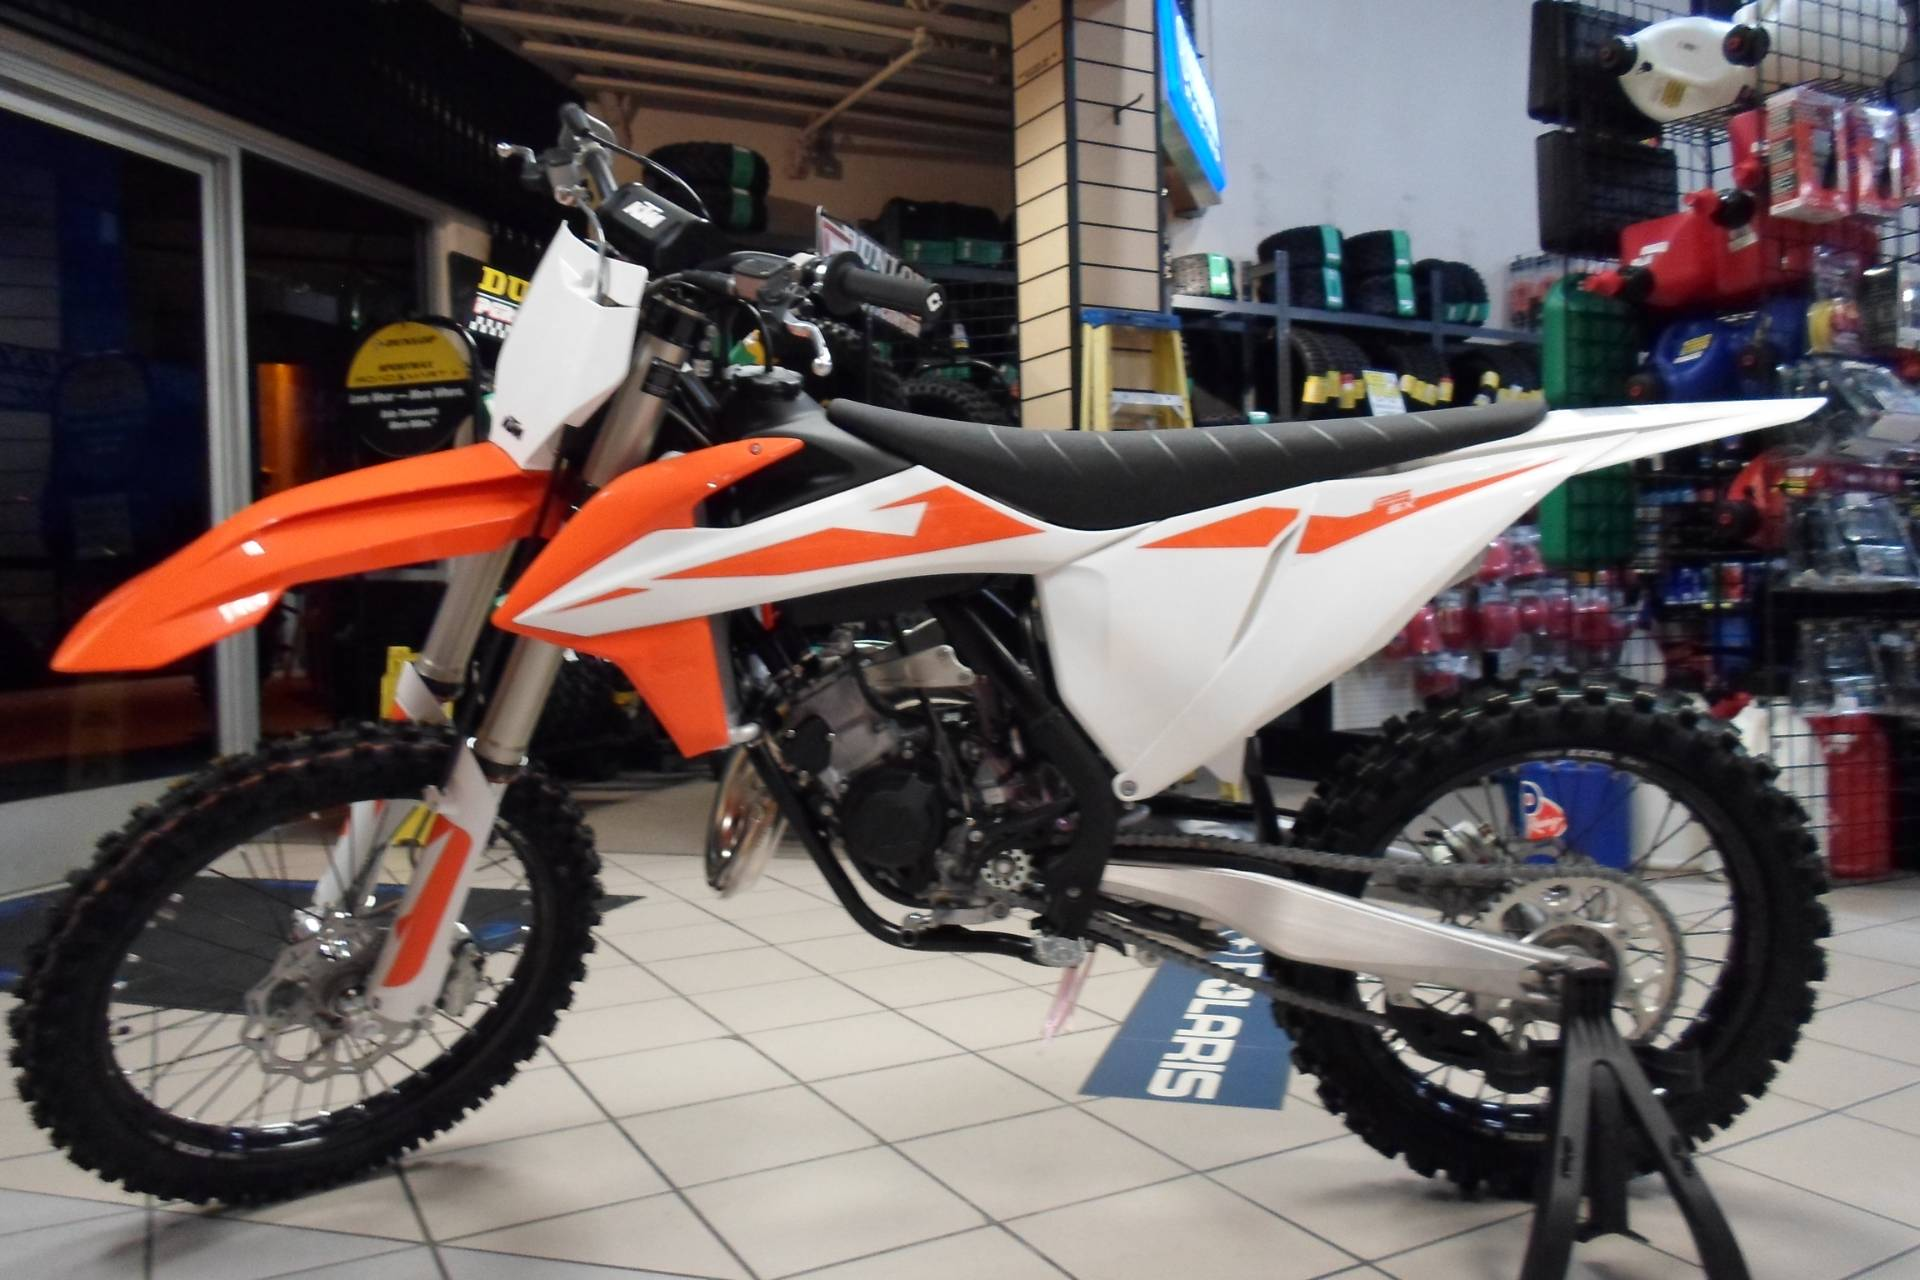 New 2019 Ktm 125 Sx Motorcycles In San Marcos Ca Fram Racing Fuel Filter Canister California